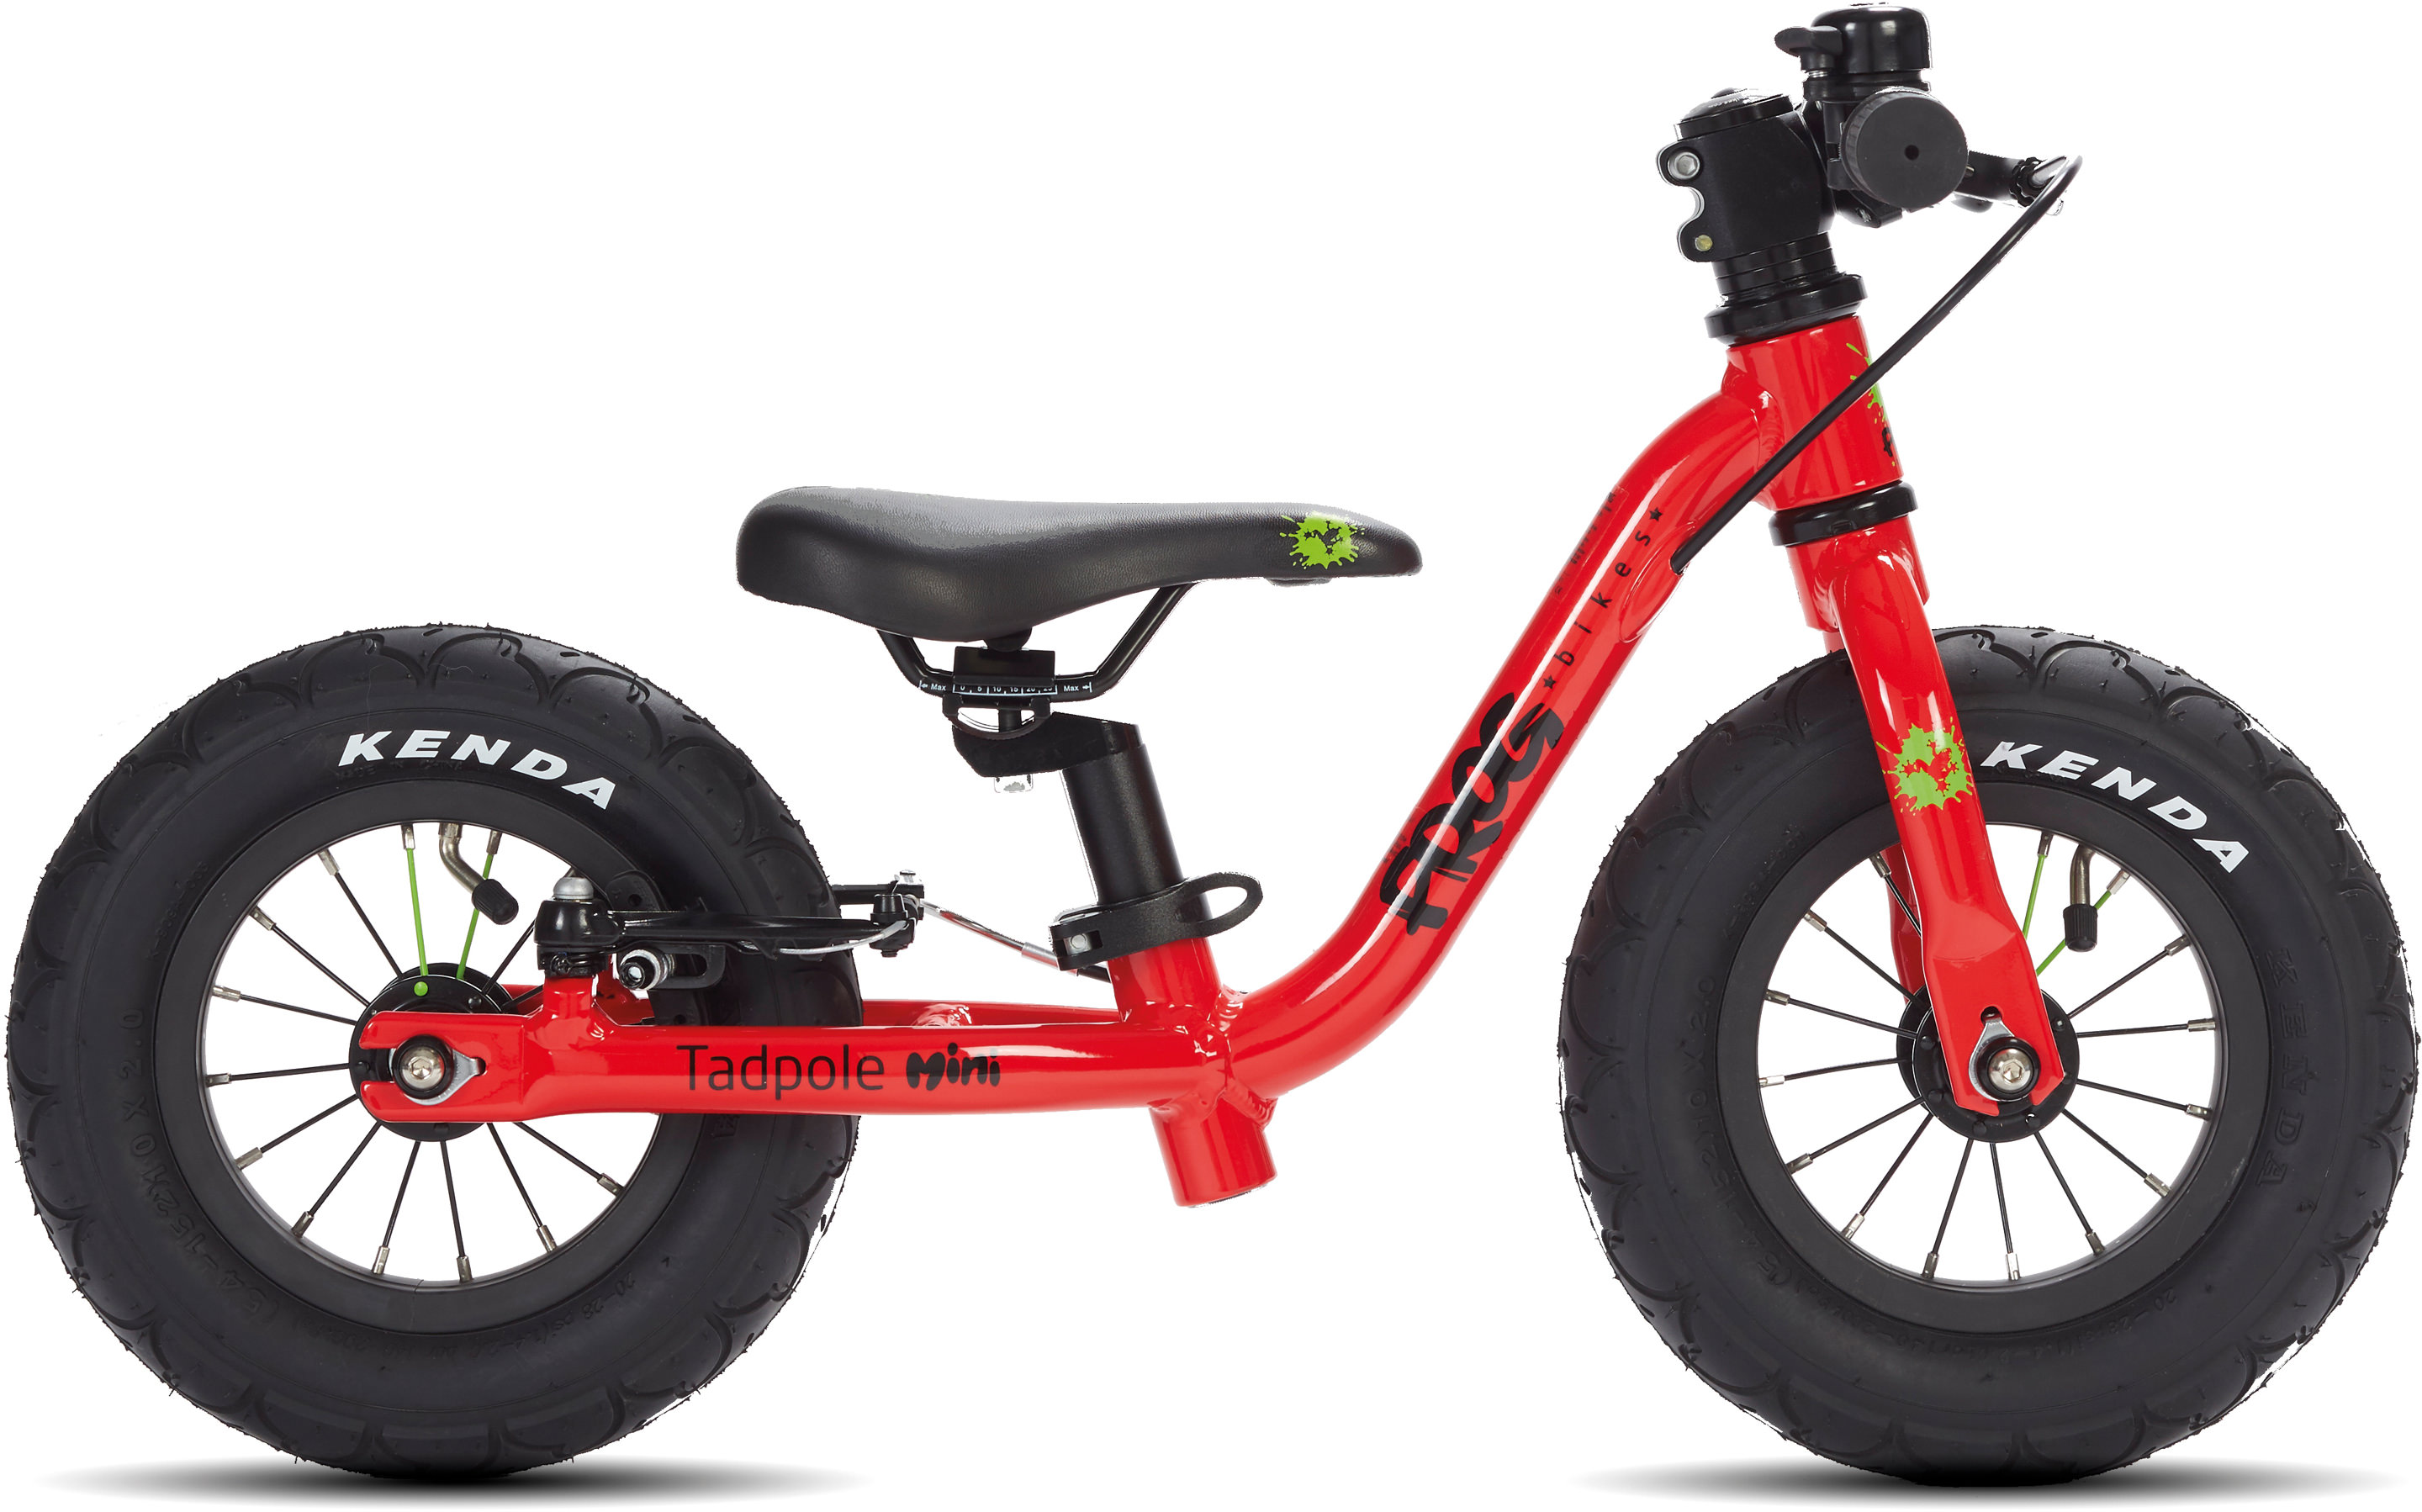 Tadpole Mini Rouge | Bouticycle